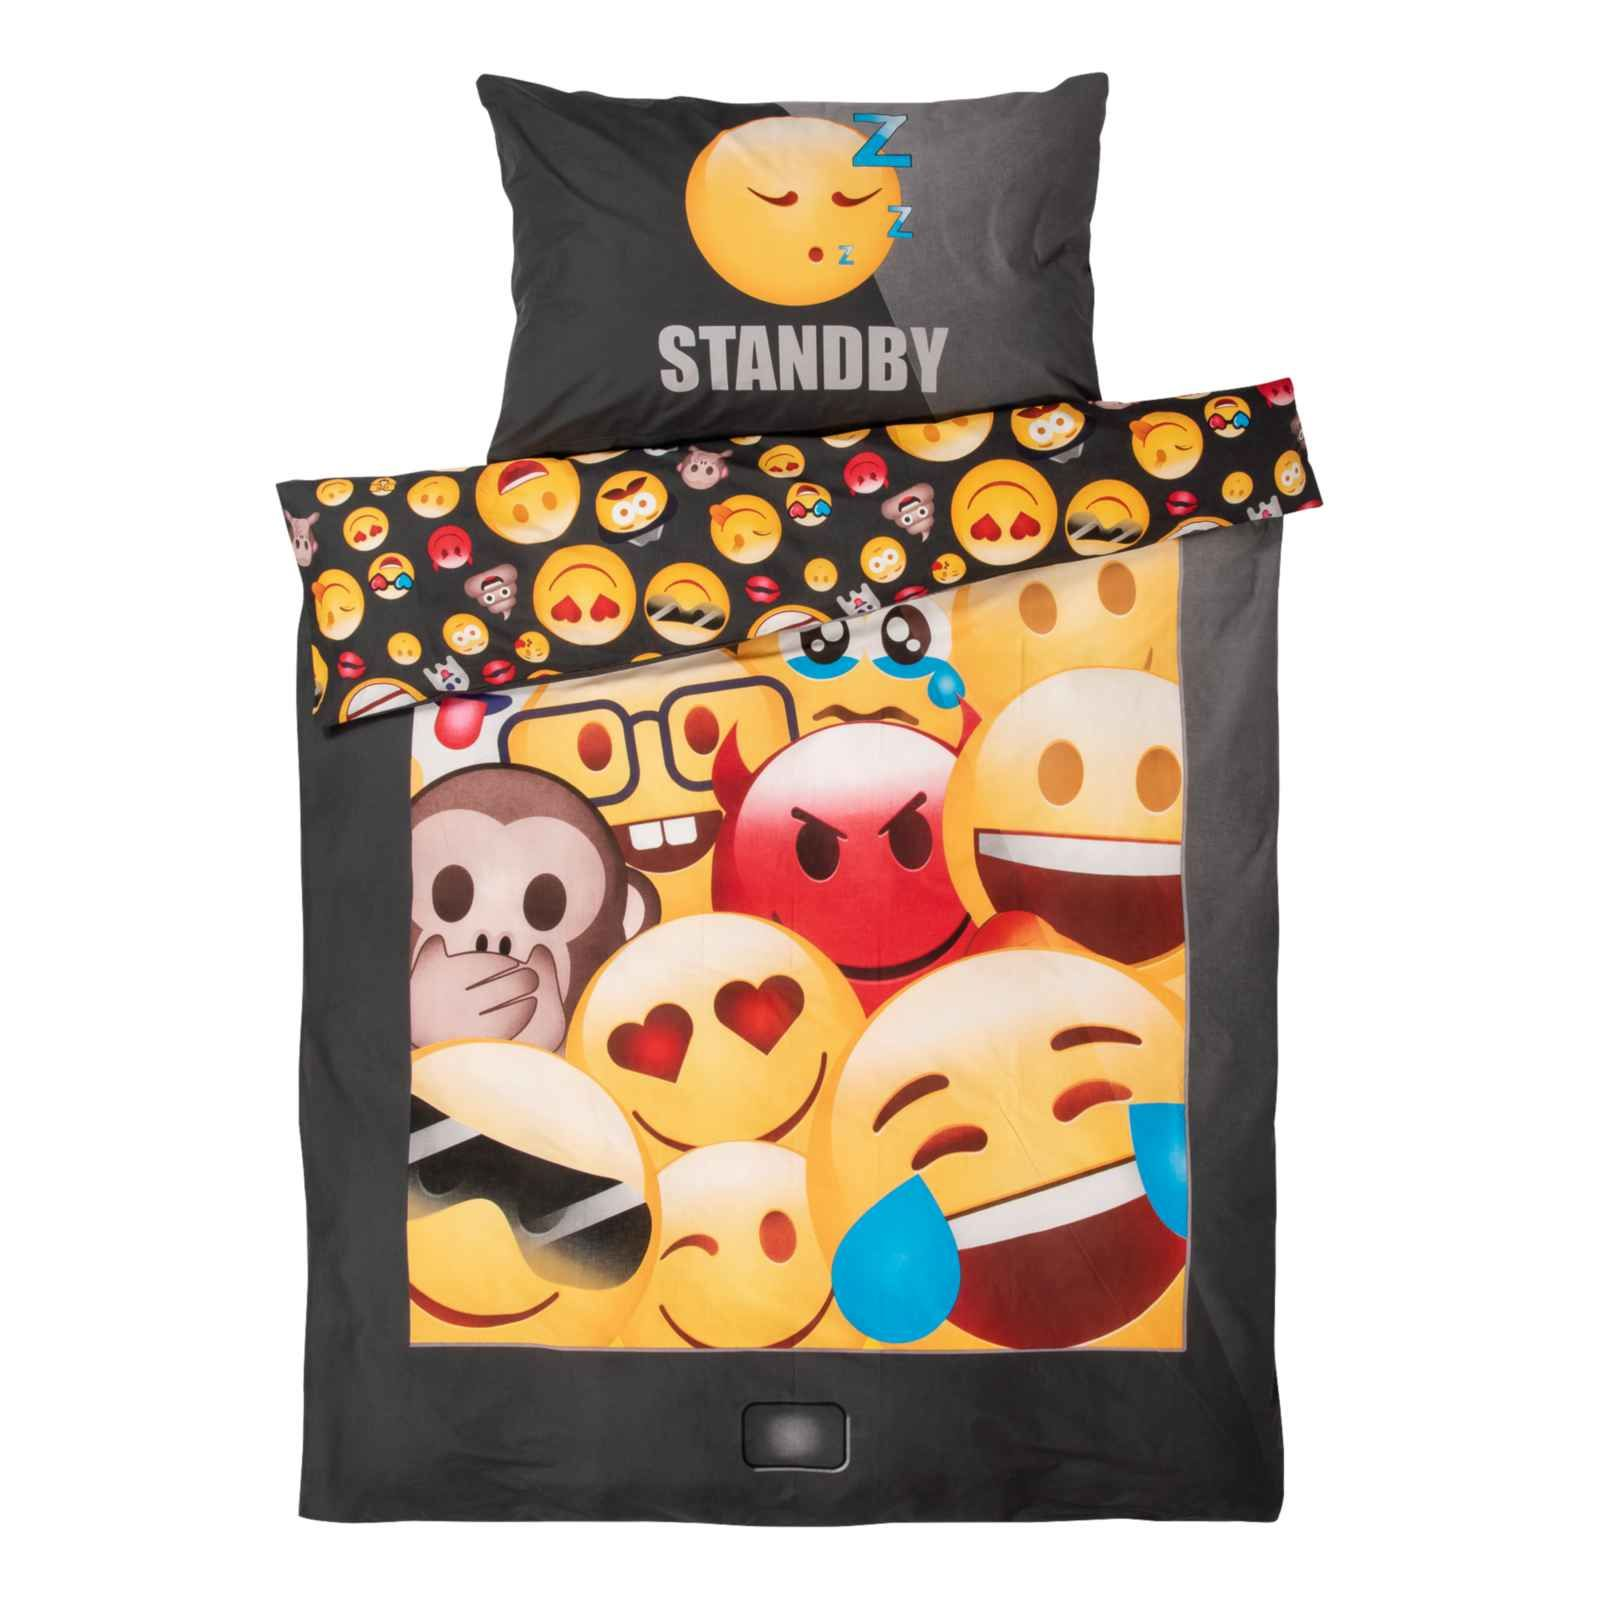 Https Www Ottos Ch De Bettwasche Emoji Standby 306790 Html